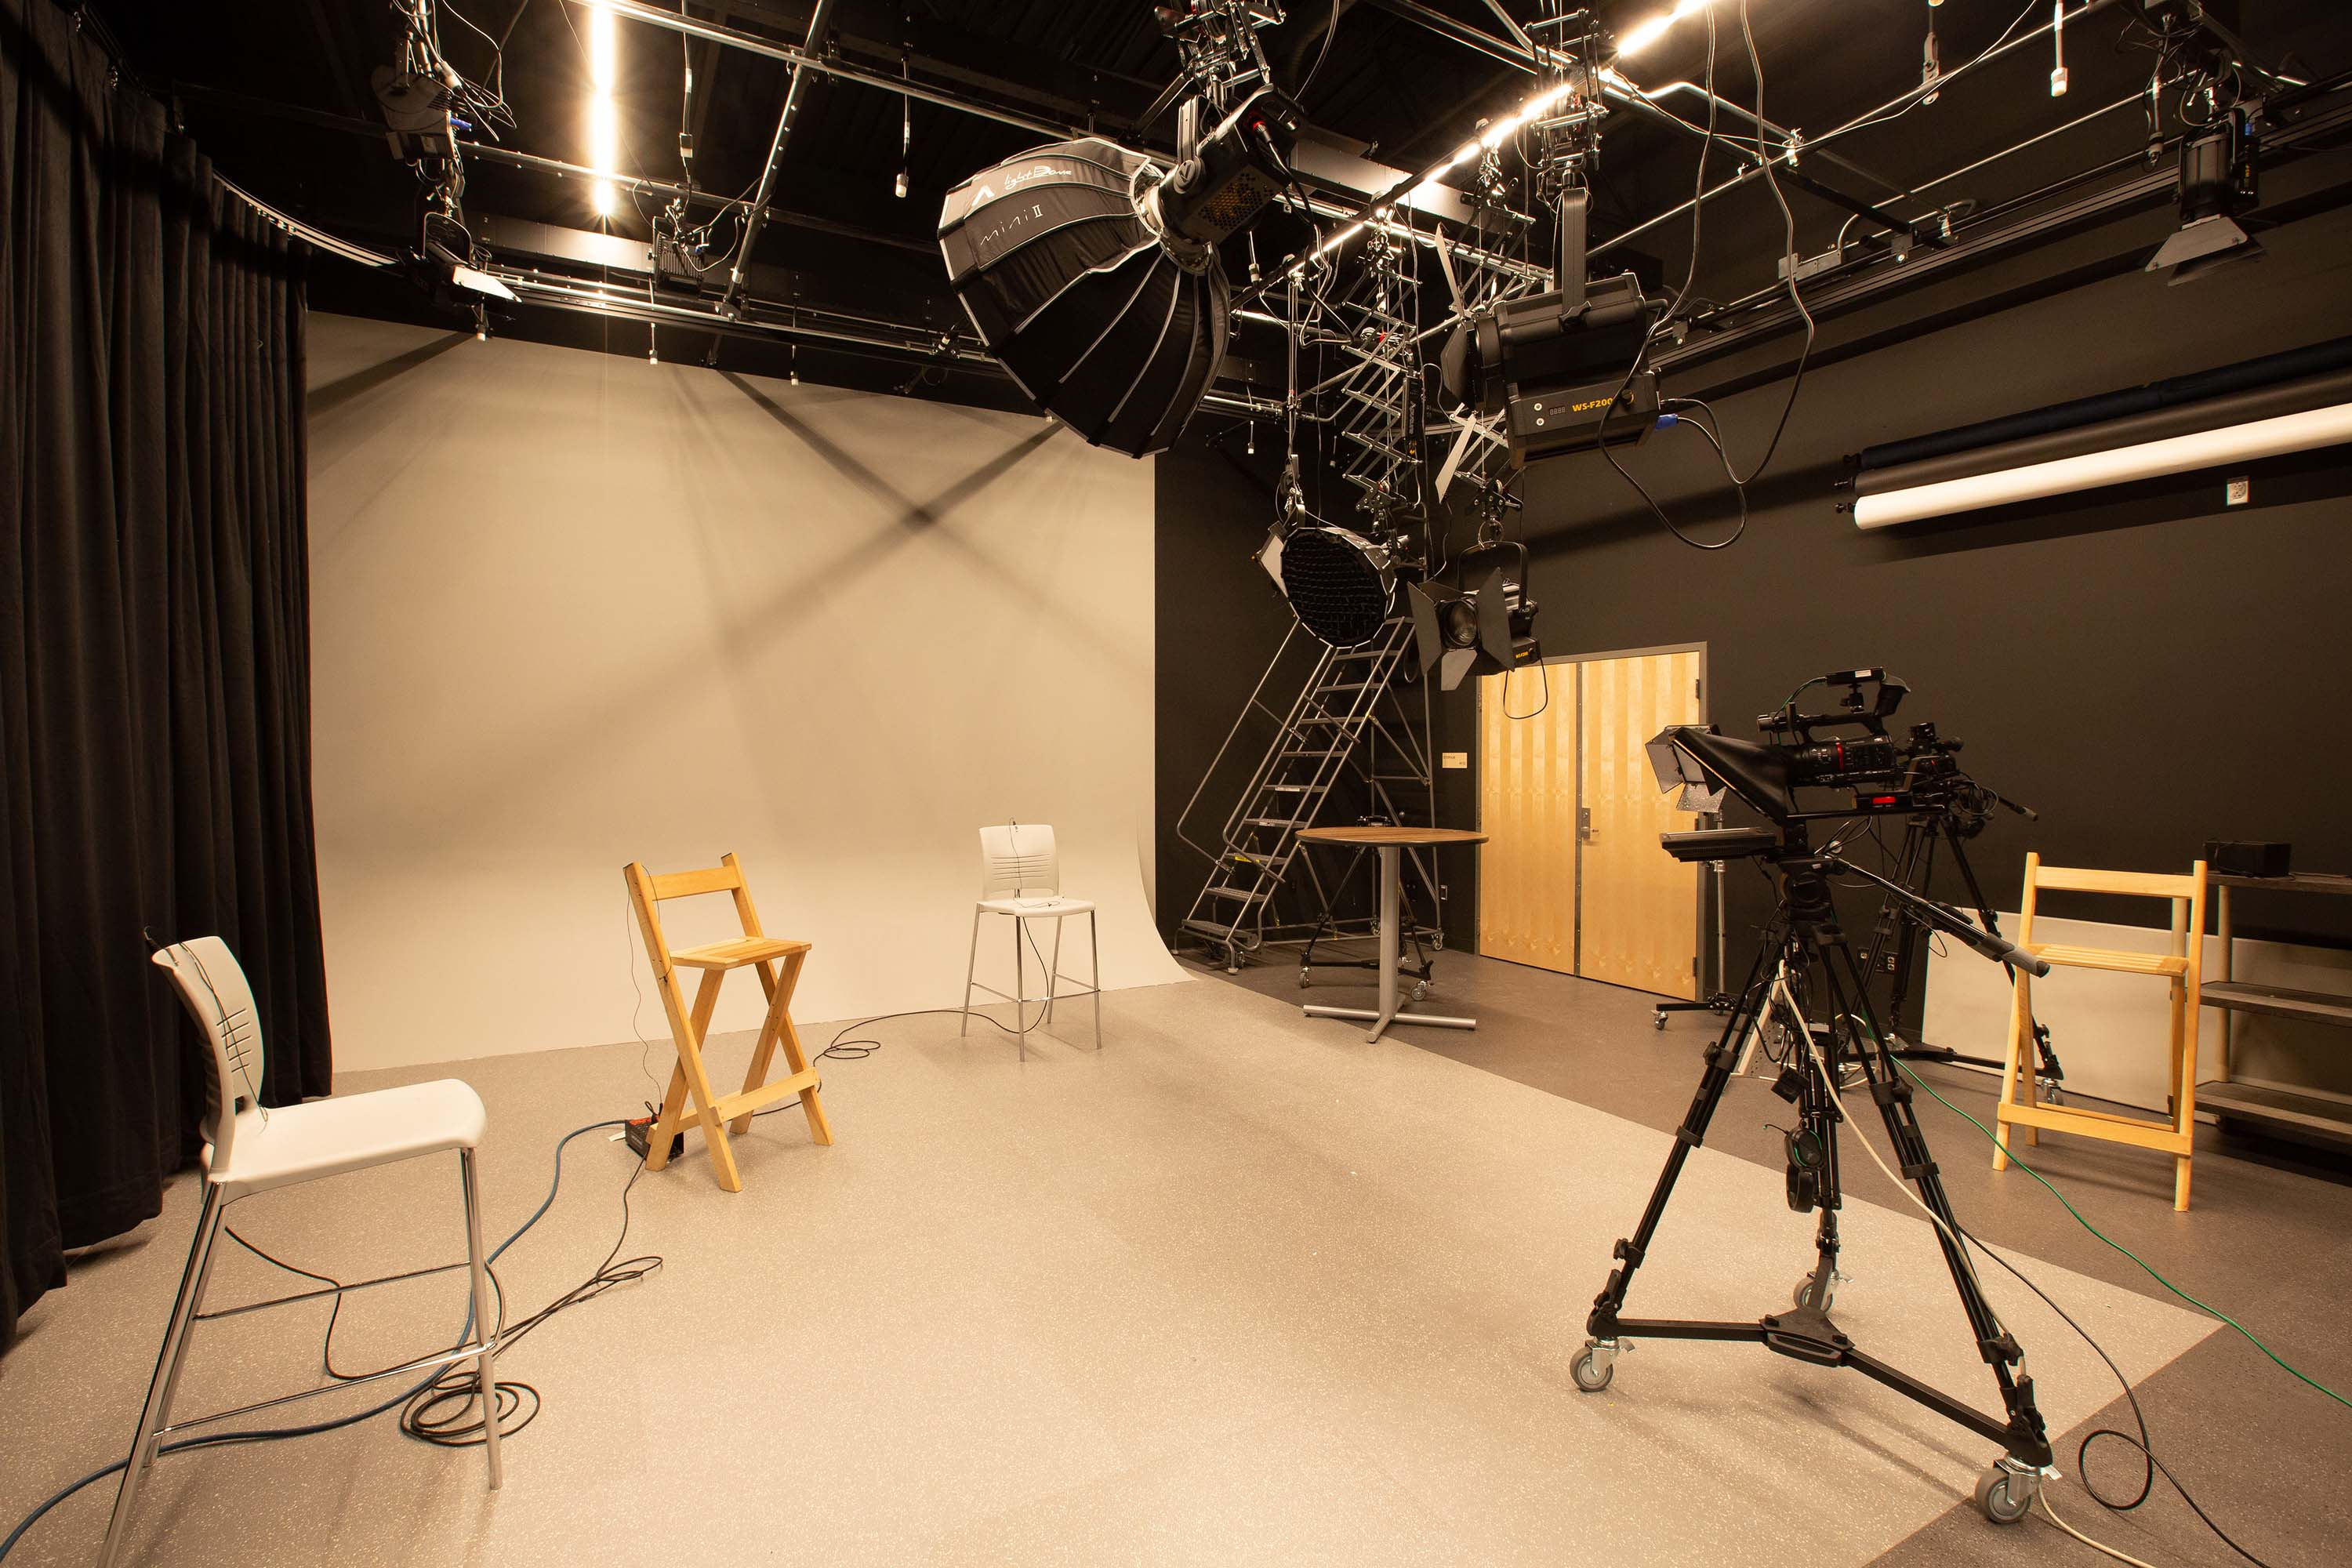 Studio setup for recording film with lights and a backdrop.